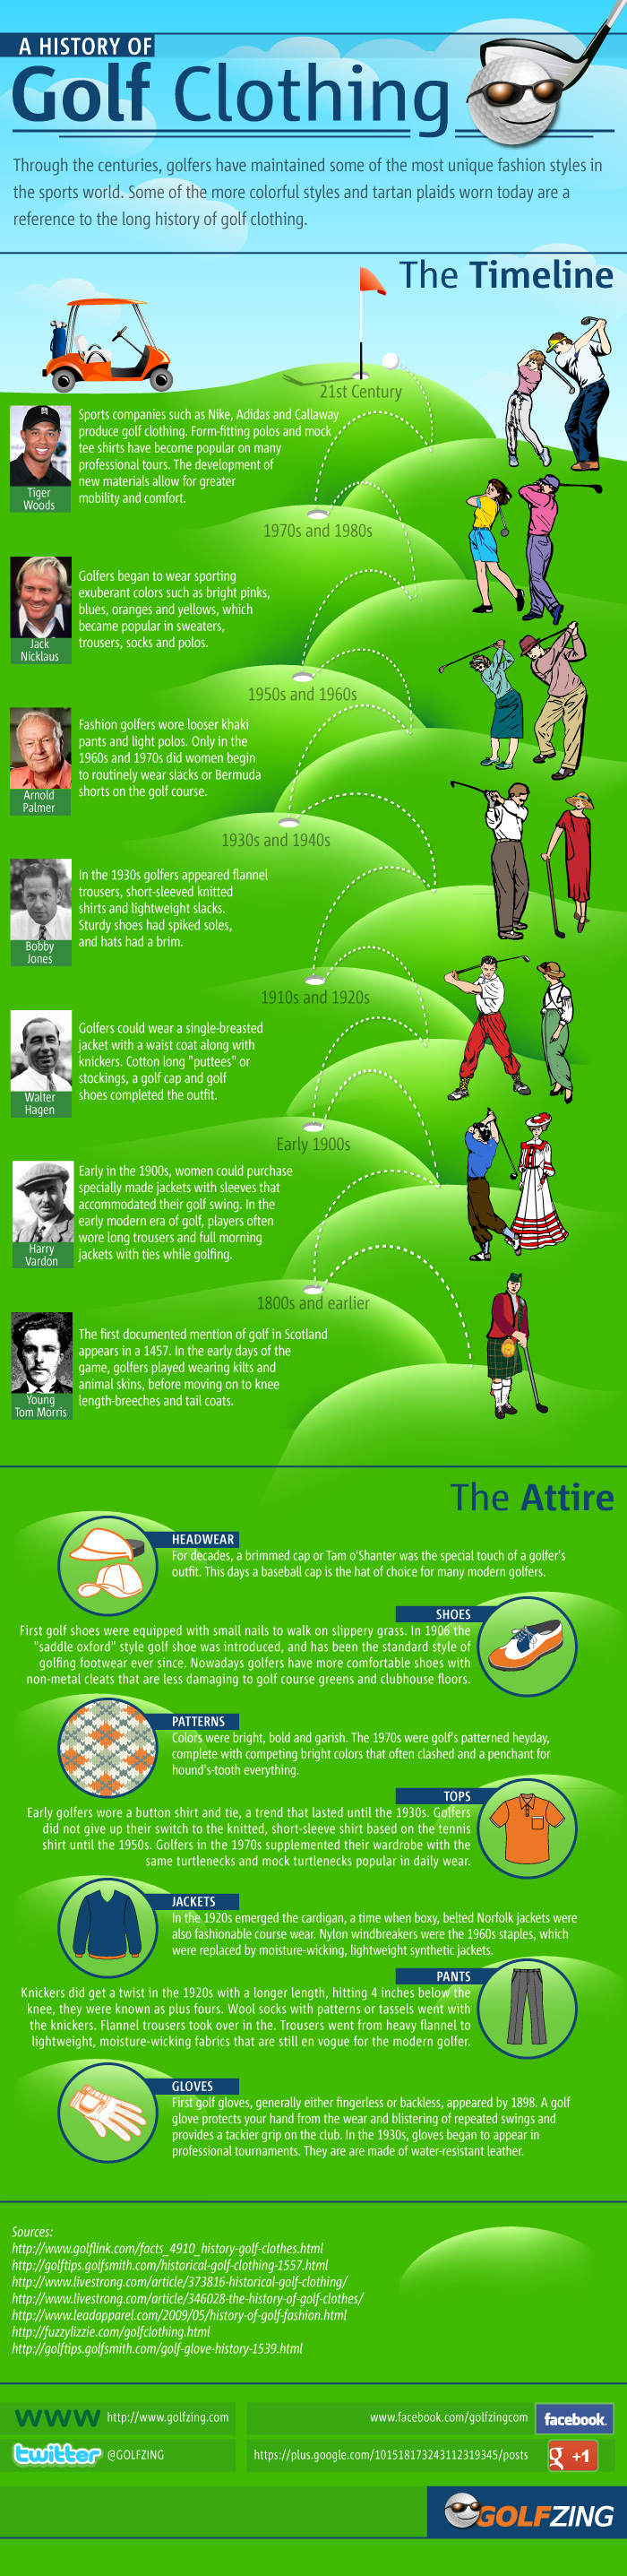 The-history-of-Golf-clothing